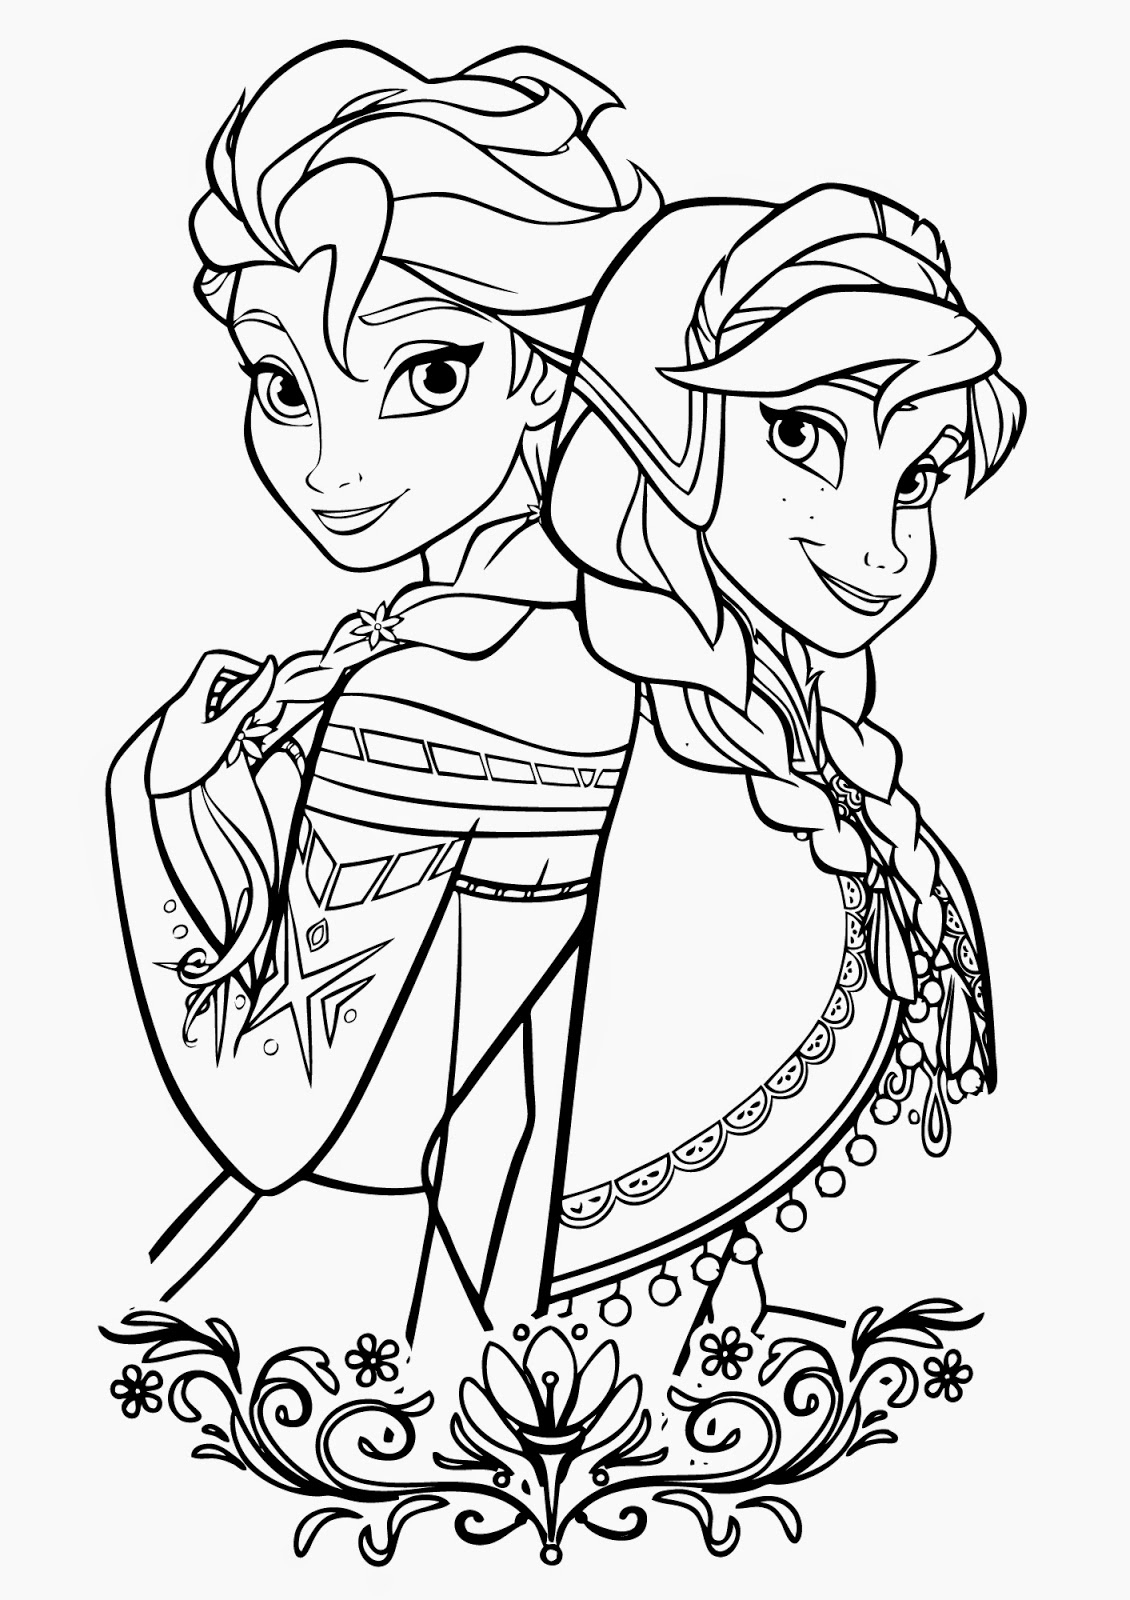 Free Coloring Pages Of Frozen Collection 5r - Free Download